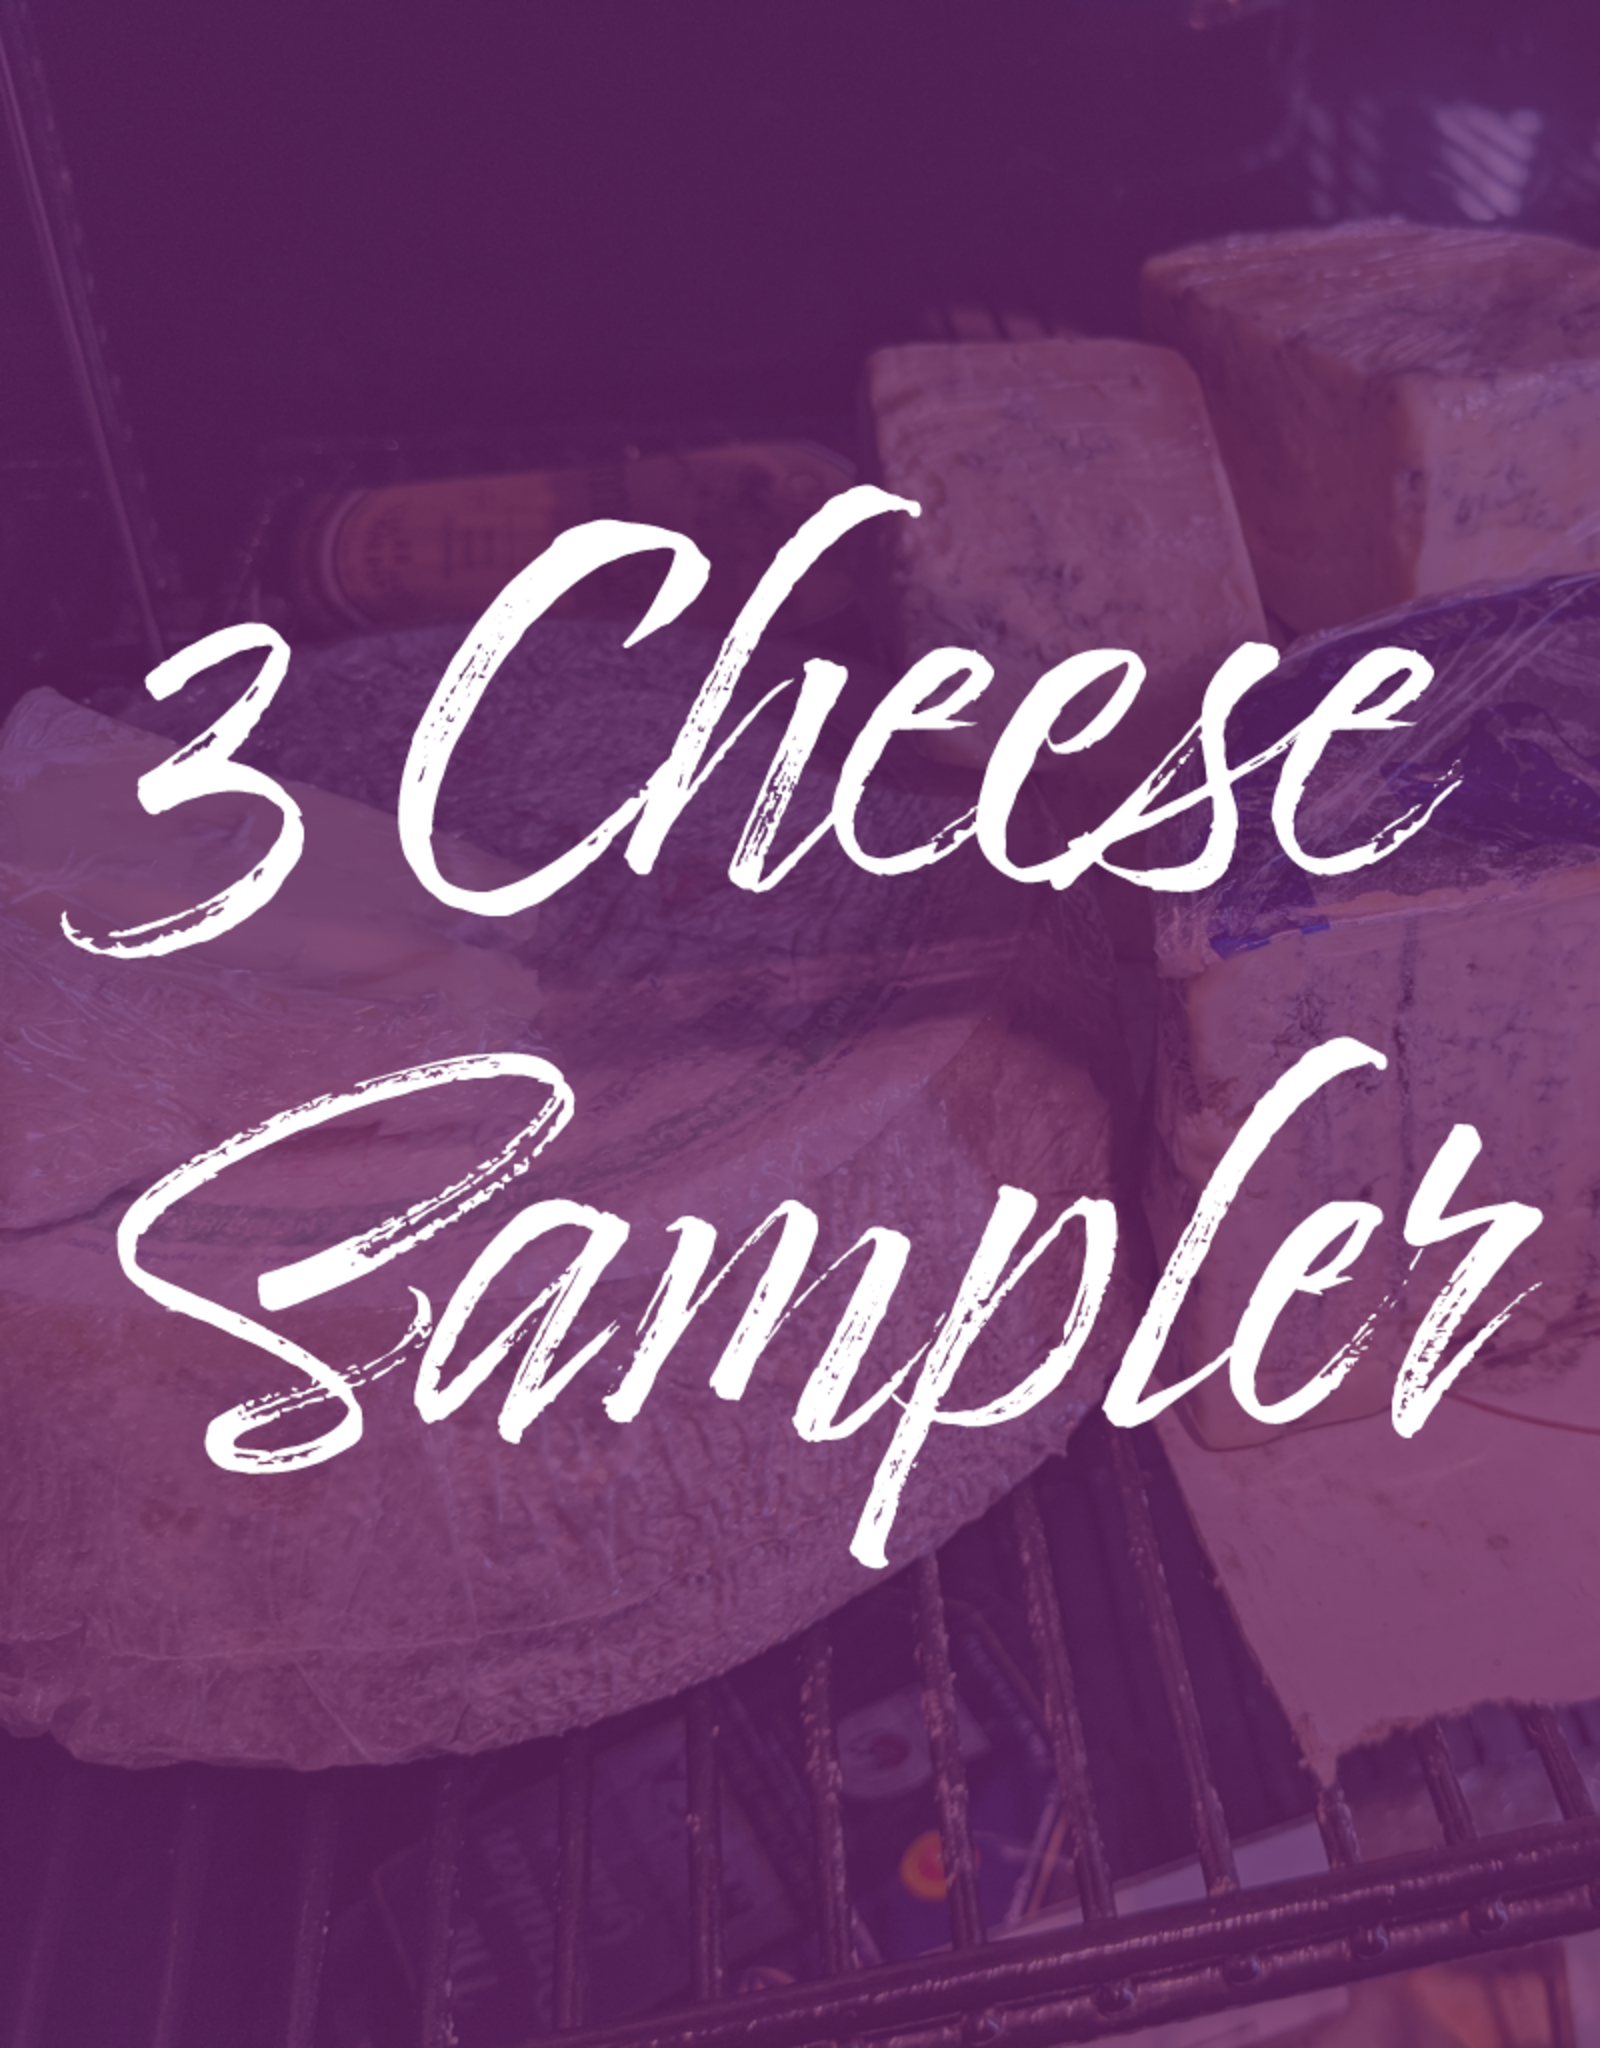 Vintage Wine Cellars 3 Cheese Sampler